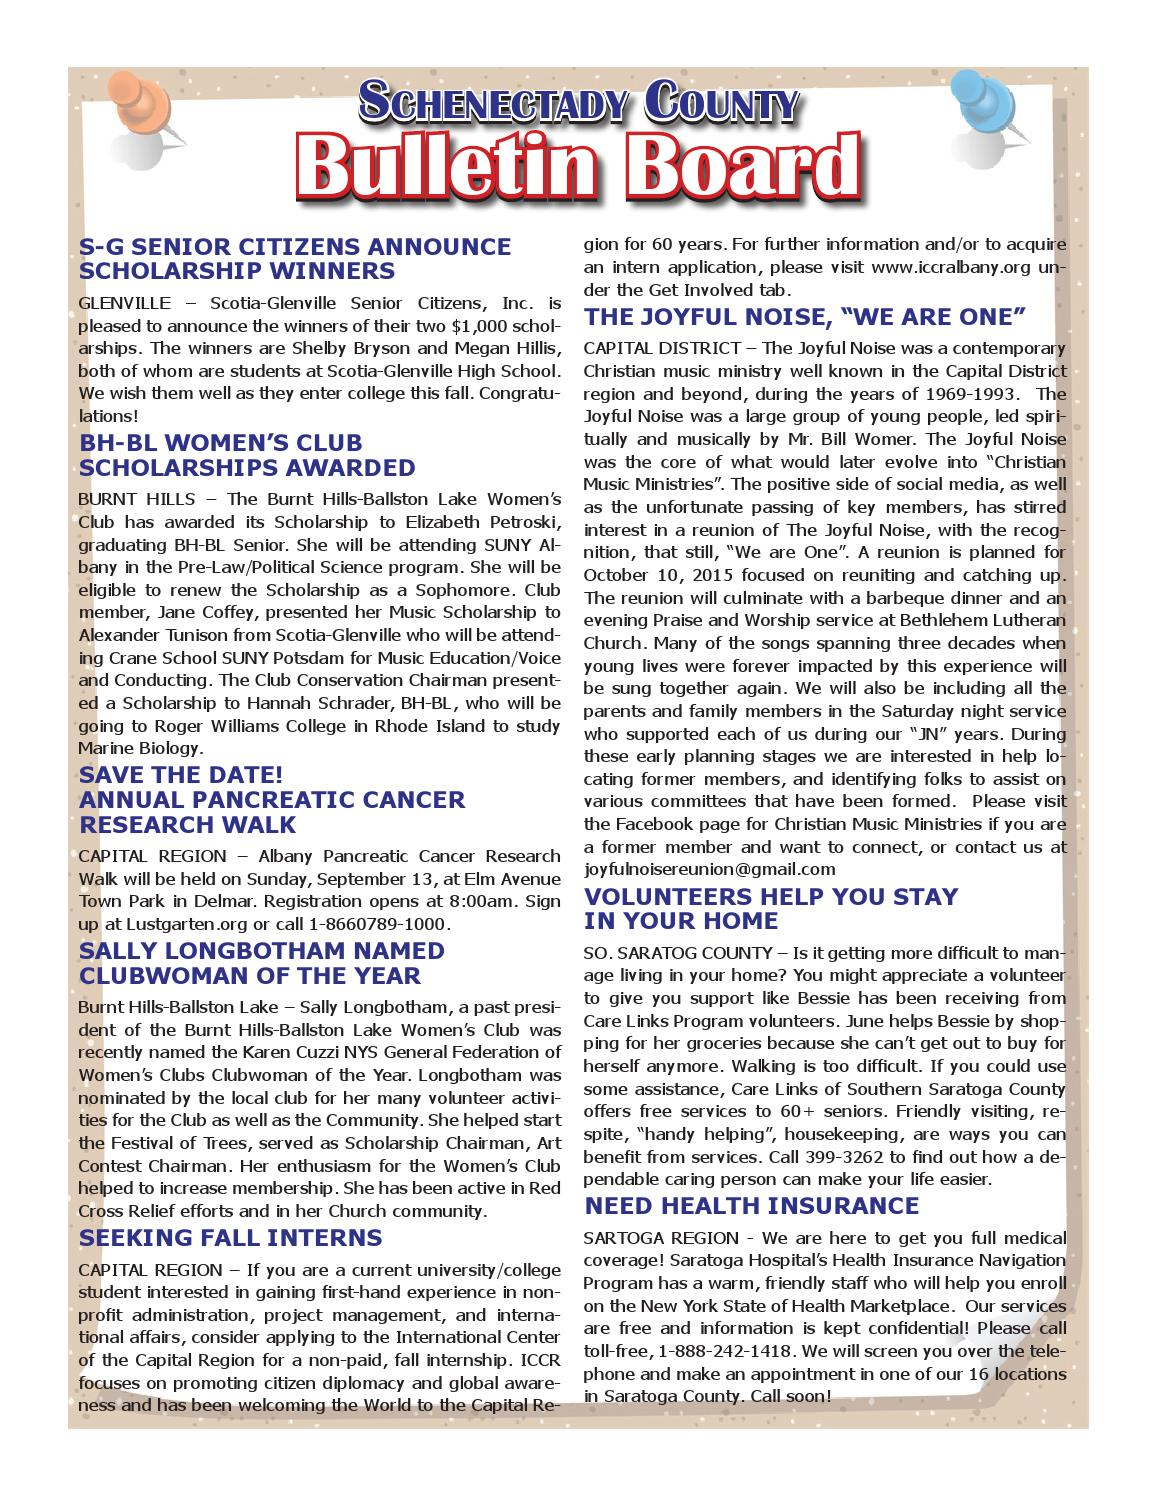 schenectady county bulletins 061815 by capital region